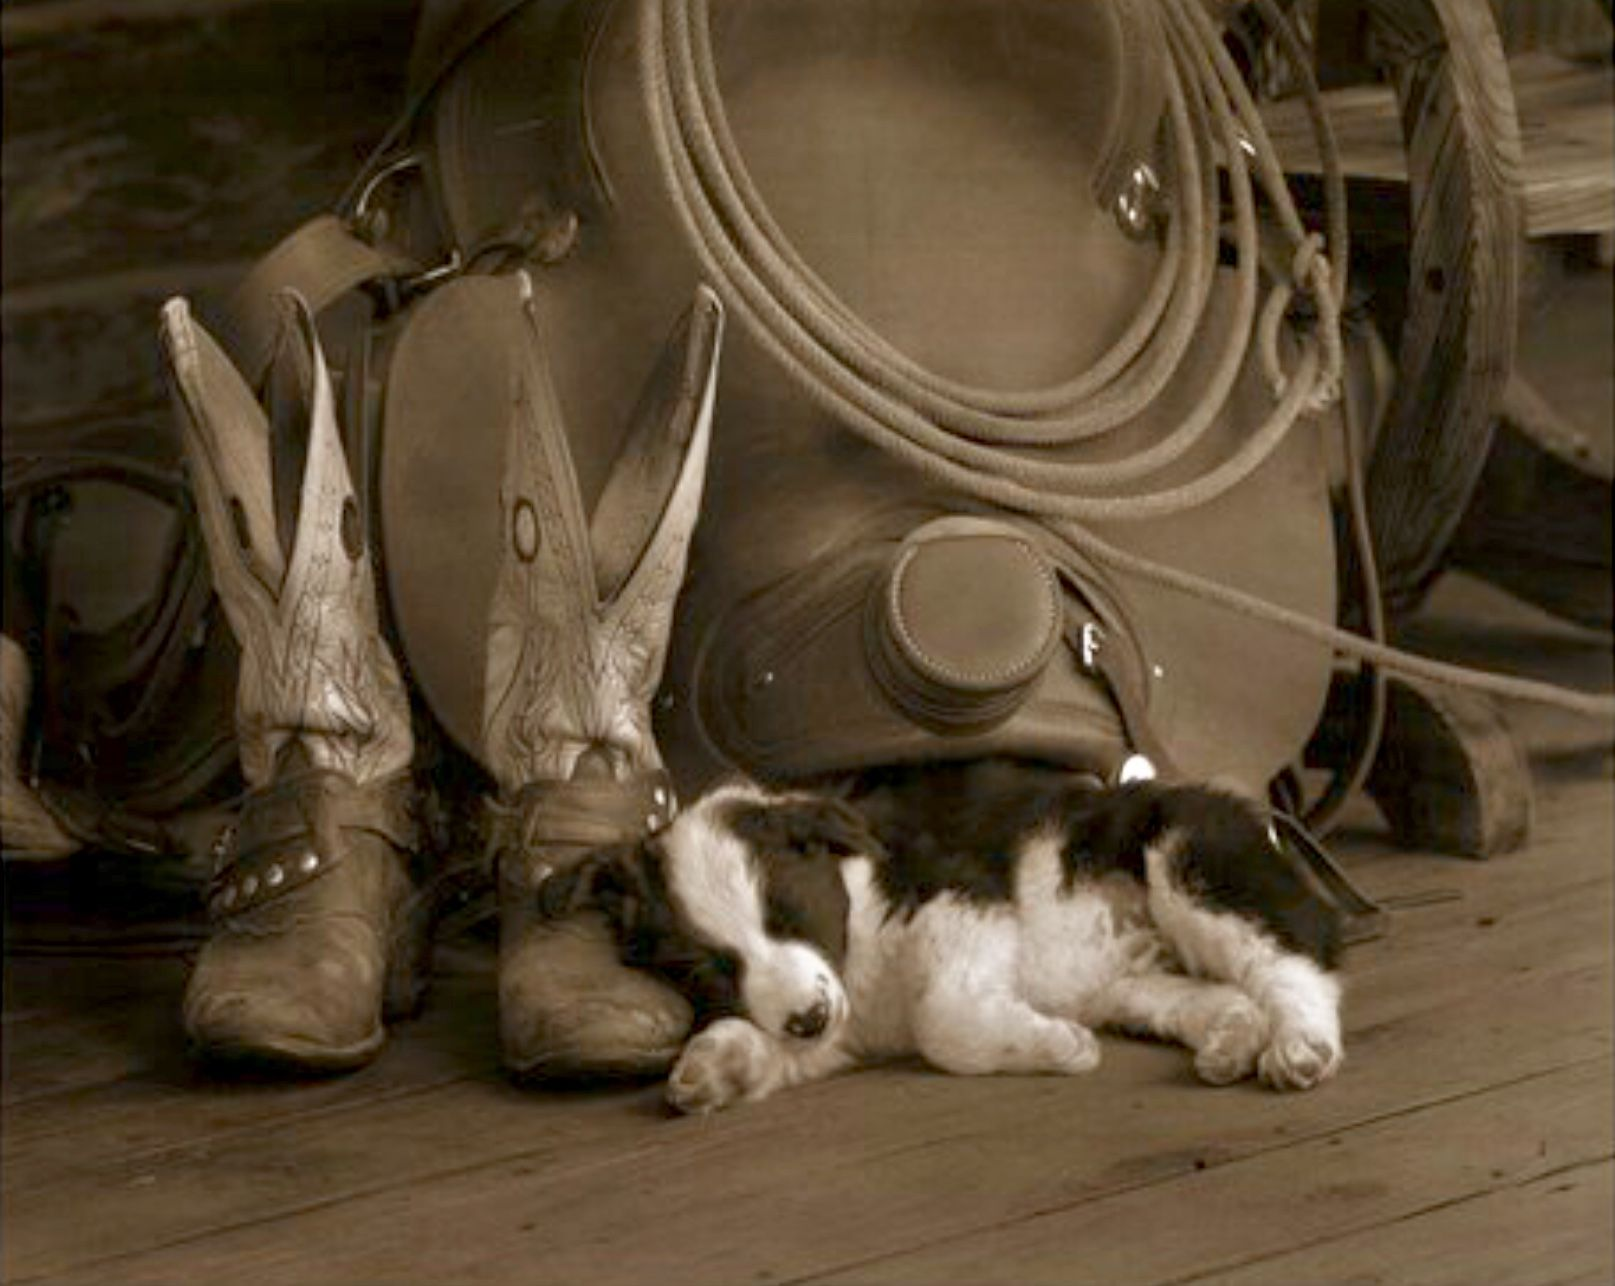 Cowboyus cute border collie puppy sleeping by his masterus boots